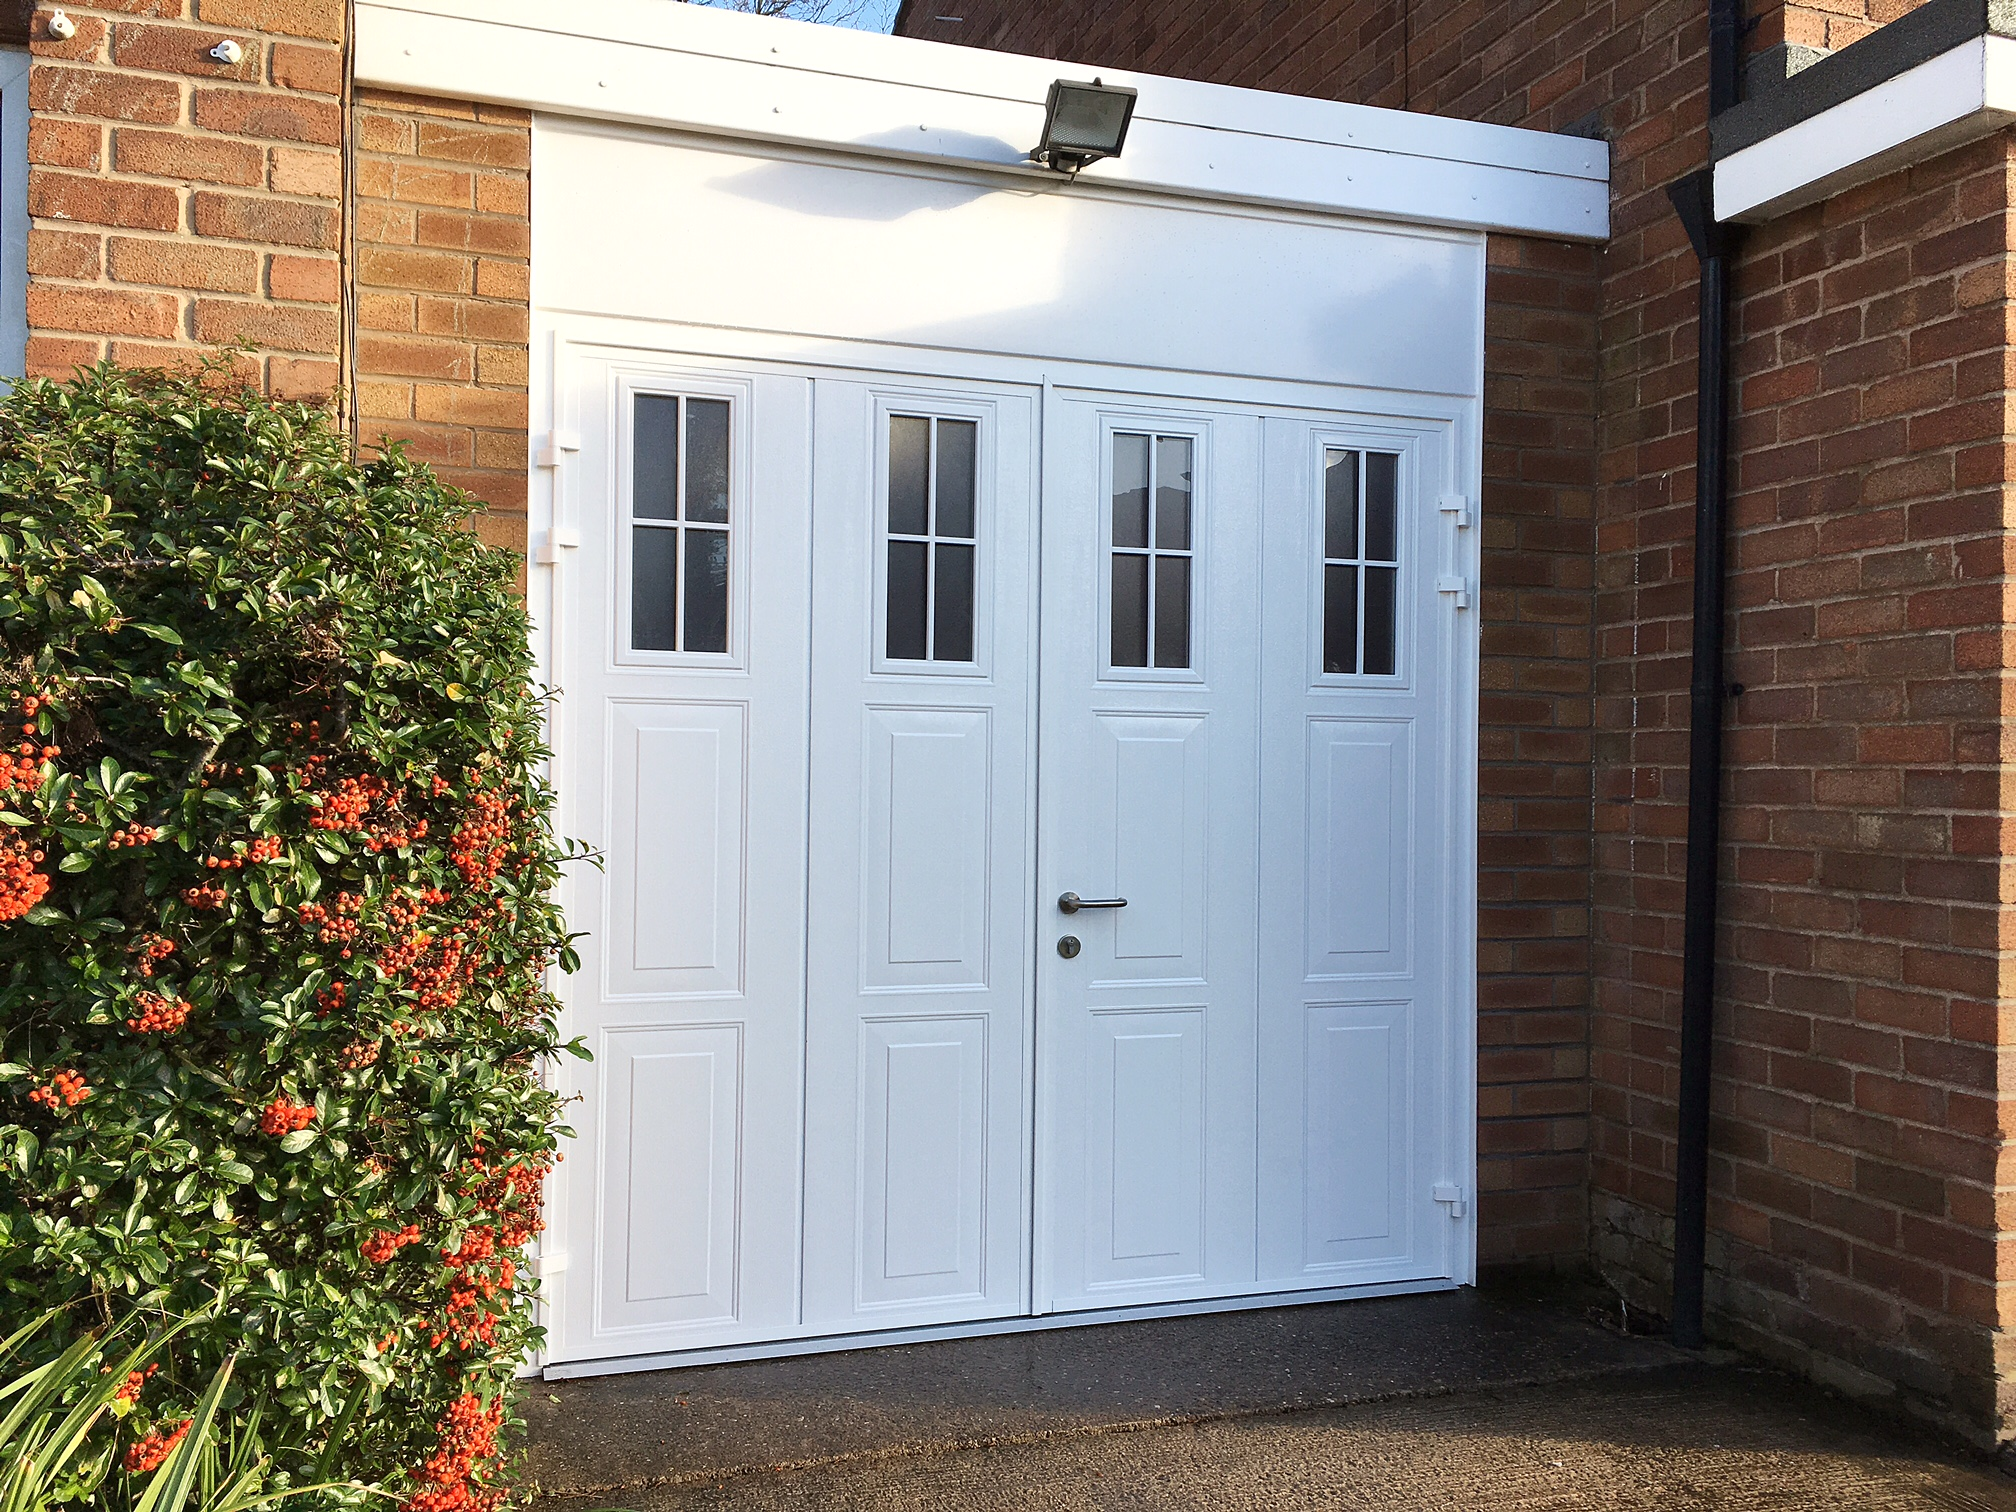 Carteck side hinged garage door pennine garage doors for Garage doors uk